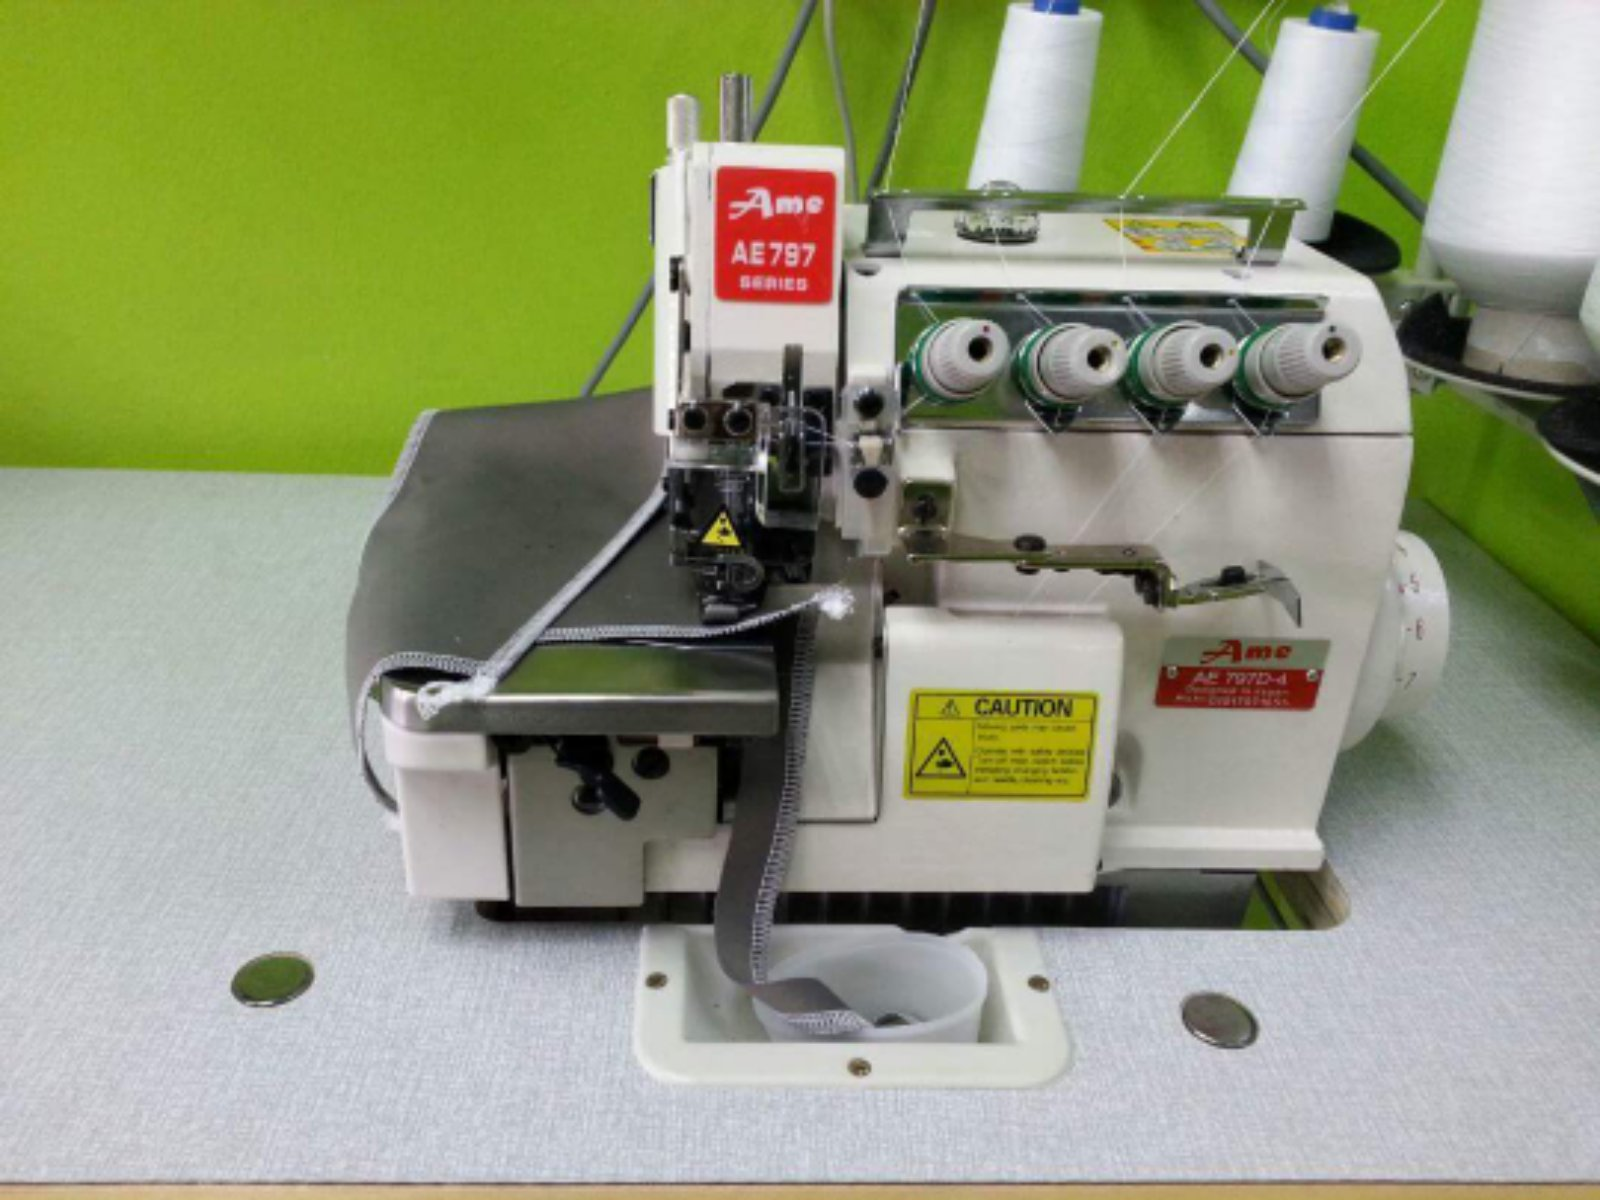 New Brand Industrial Overlock Sewing Machine